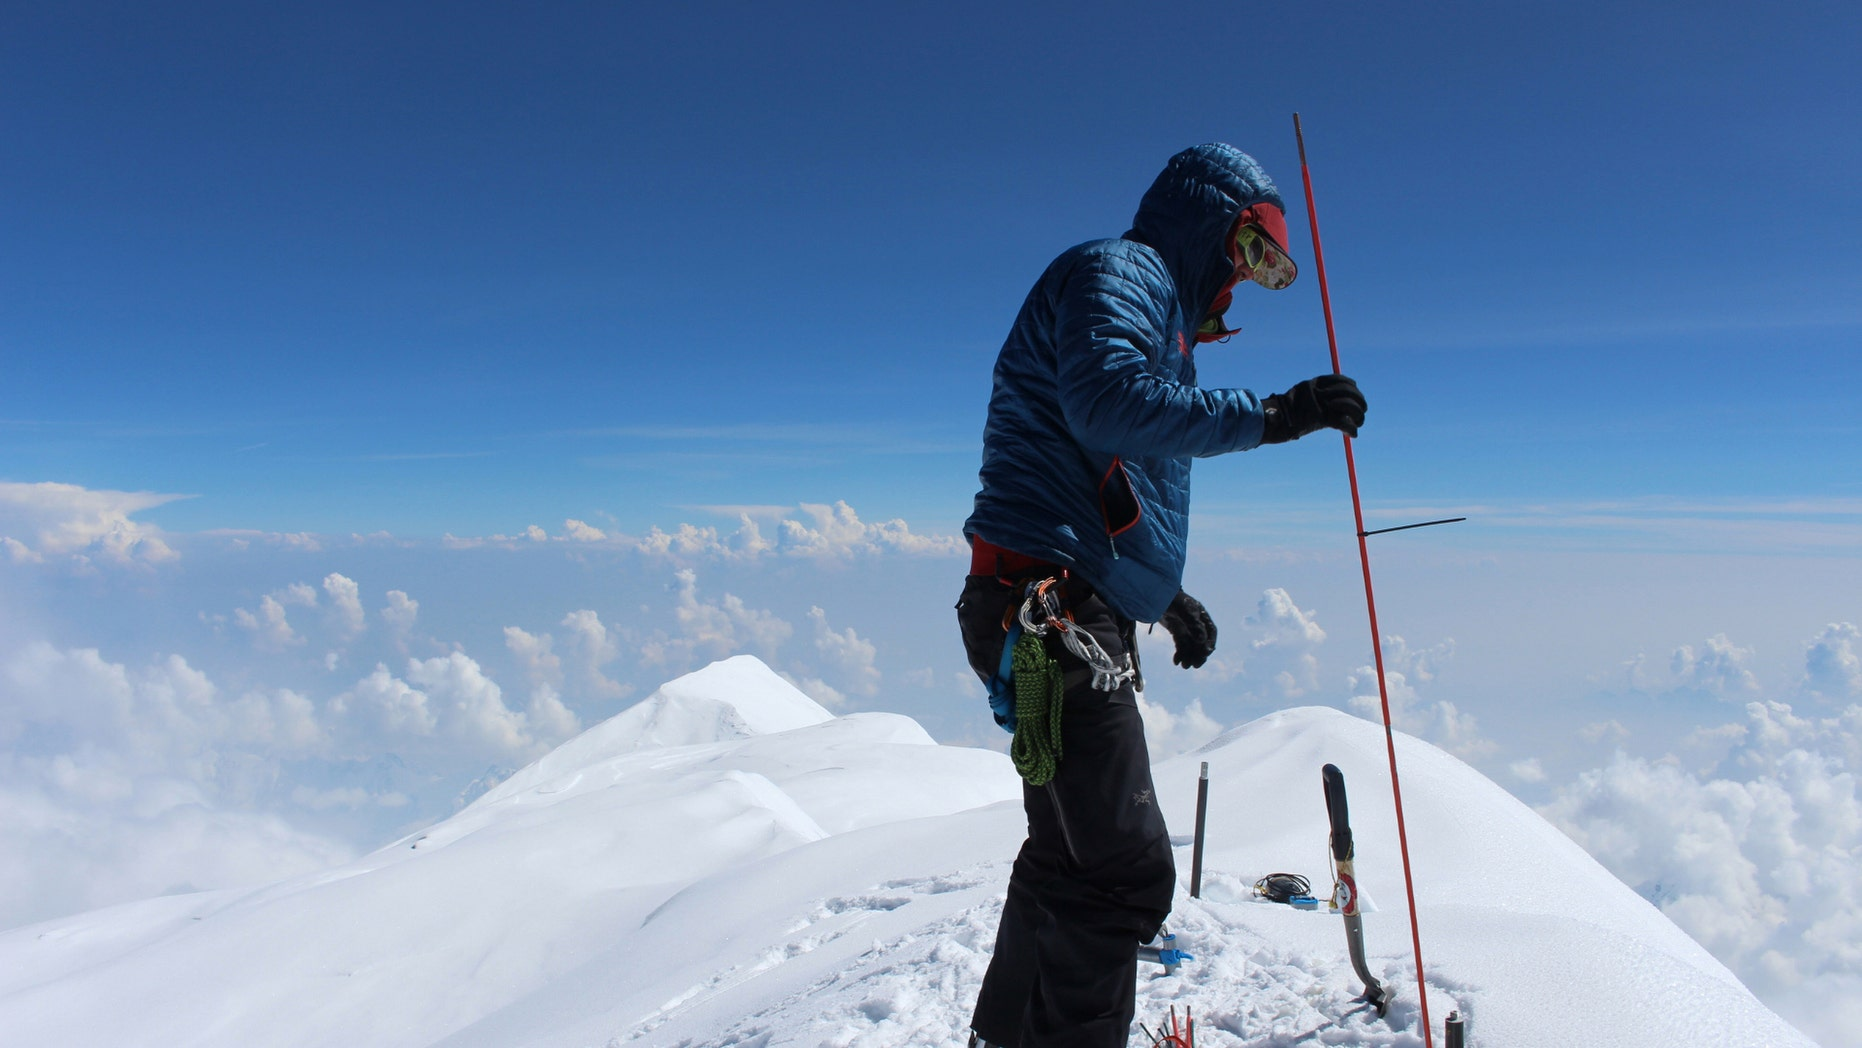 In this June 24, 2015, photo provided by Compass Data/USGS, Blaine Horner of CompassData probes the snow pack at the highest point in North America along with setting up Global Position System equipment for precise summit elevation data on top of Denali in Denali National Park, Ak.